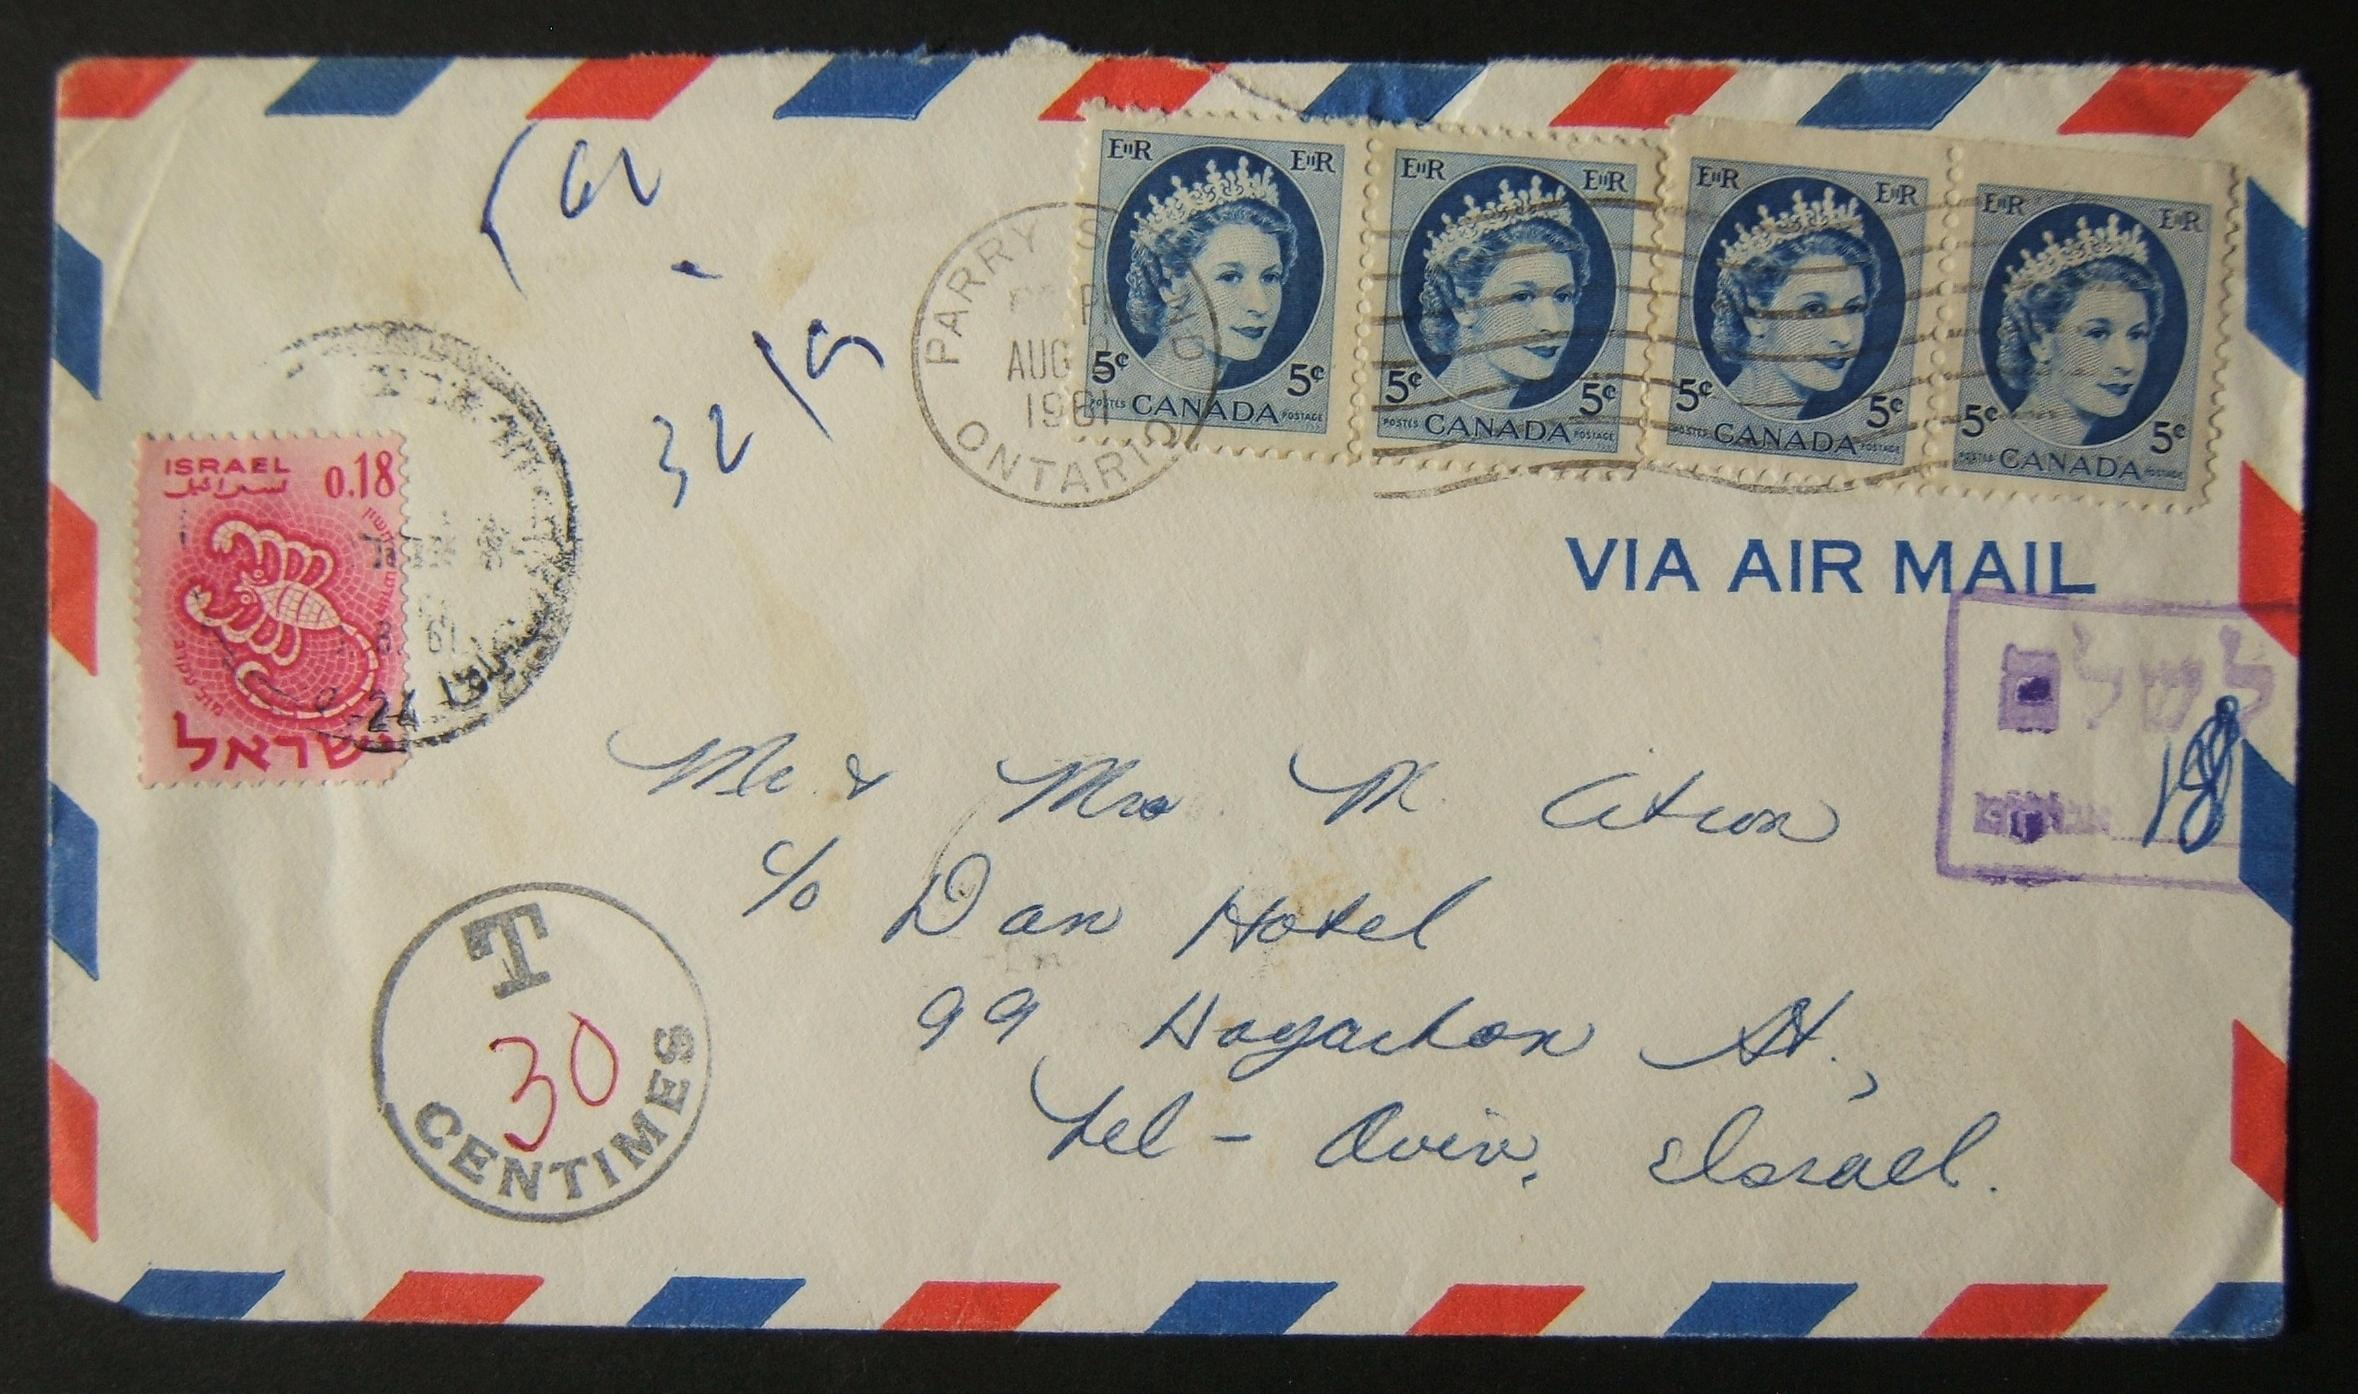 1961 incoming Canadian taxed mail: AUG 2 1961 airmail commercial cover ex ONTARIO to TLV underfranked at $0.20 and taxed 0.18L in Israel, paid 13-8-61 using 1961 Zodiac Ba211 frank